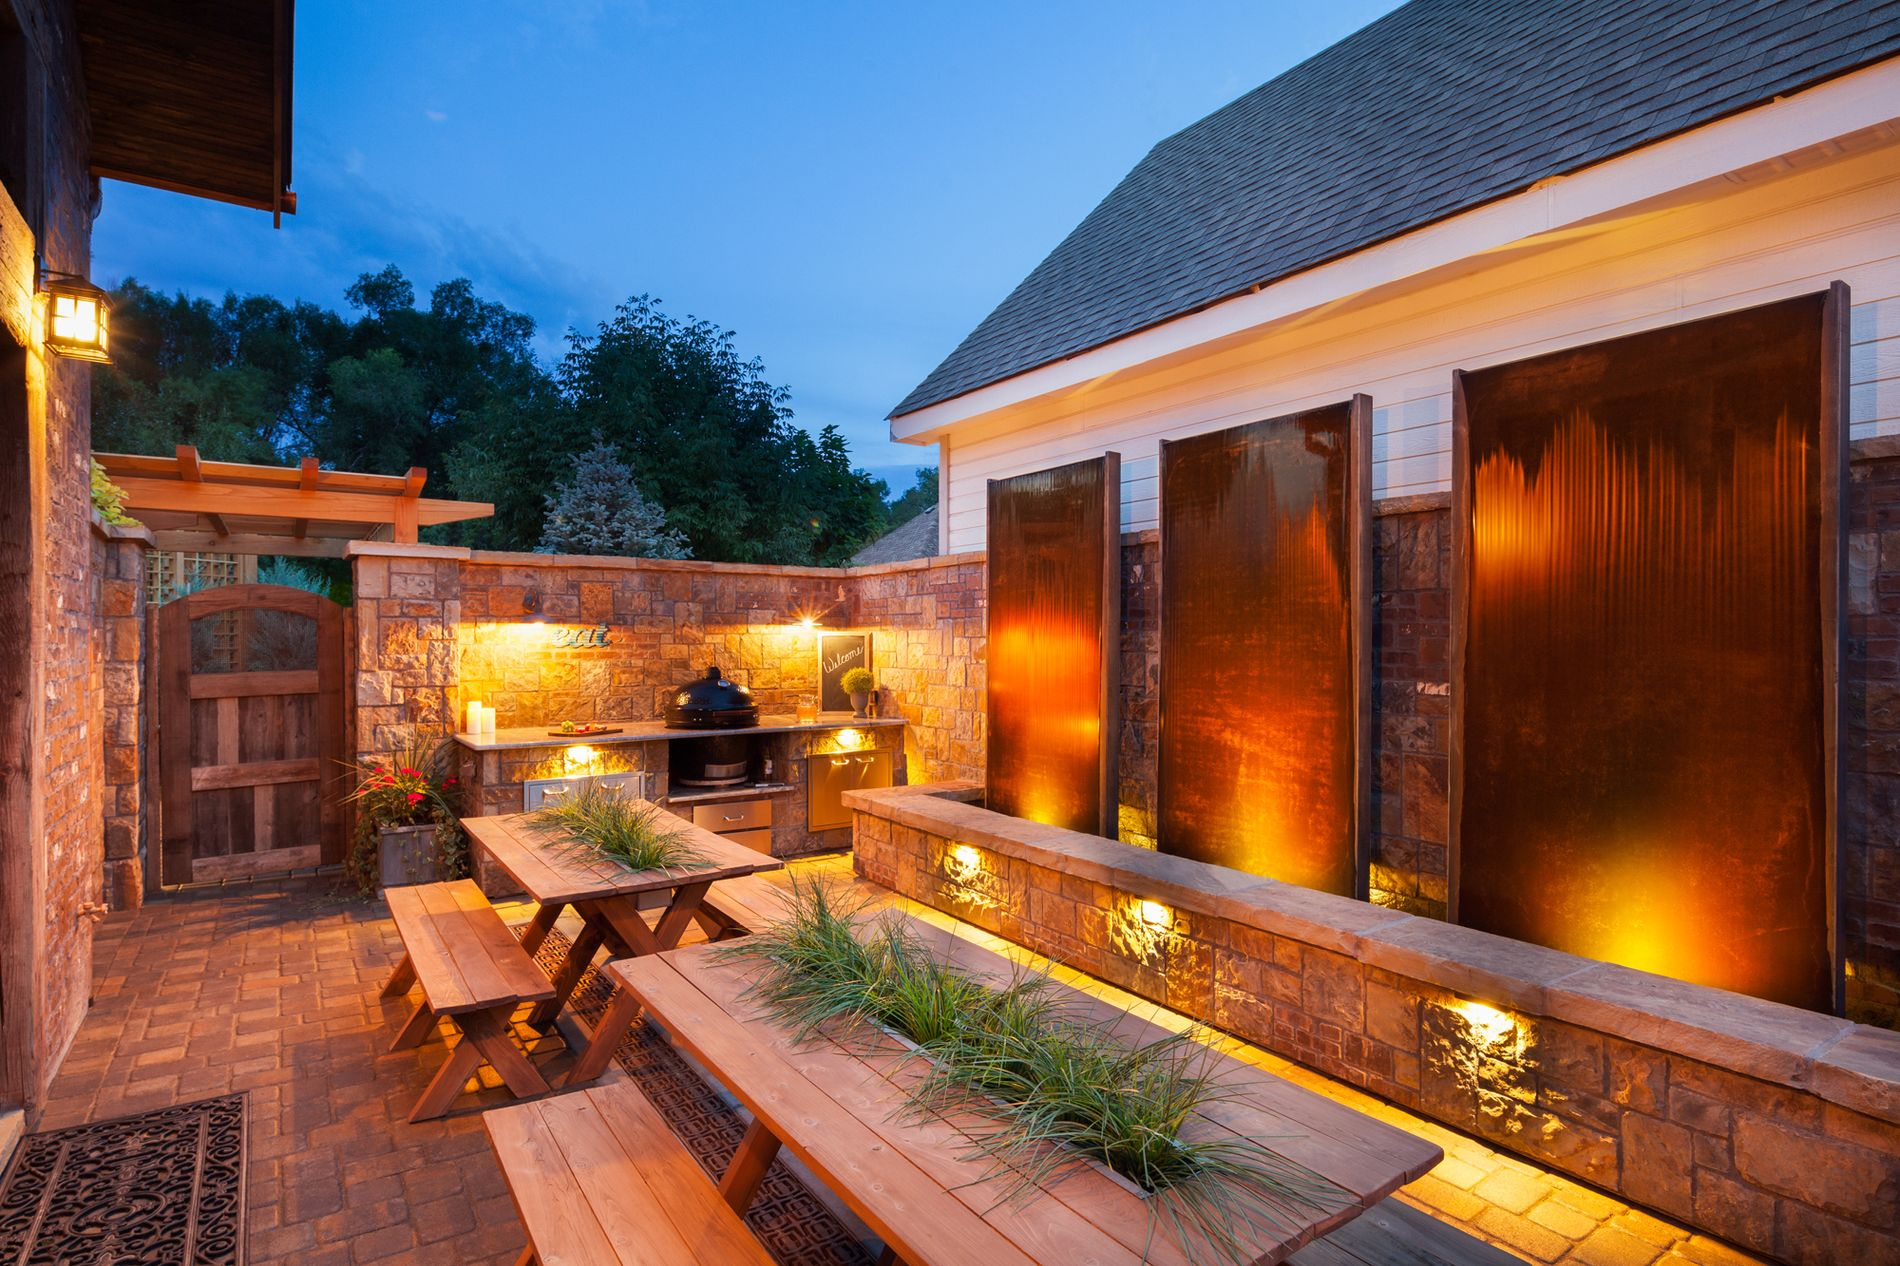 Hardscape lighting illuminates water features and masonry